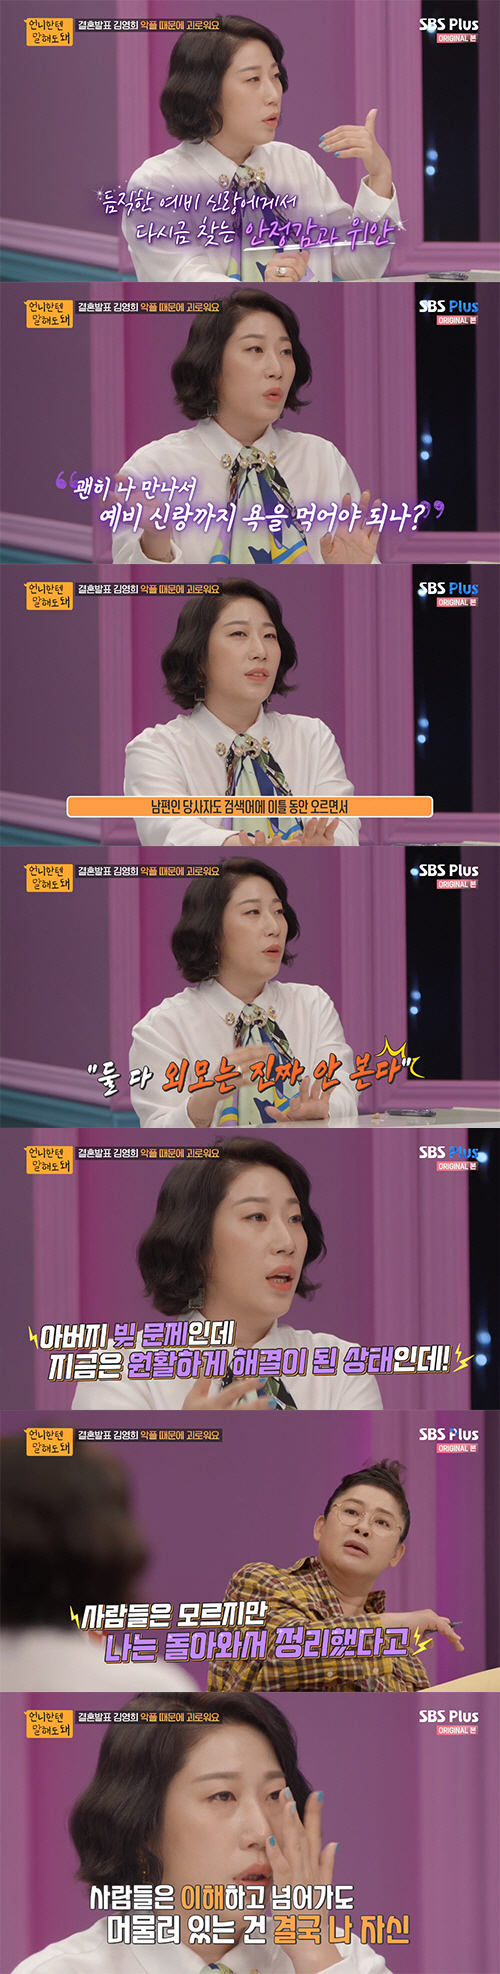 "'Yoon Seung-yeol's wife' Kim Young-hee ""What is marriage swearing? Bad comments pouring out"" tears"